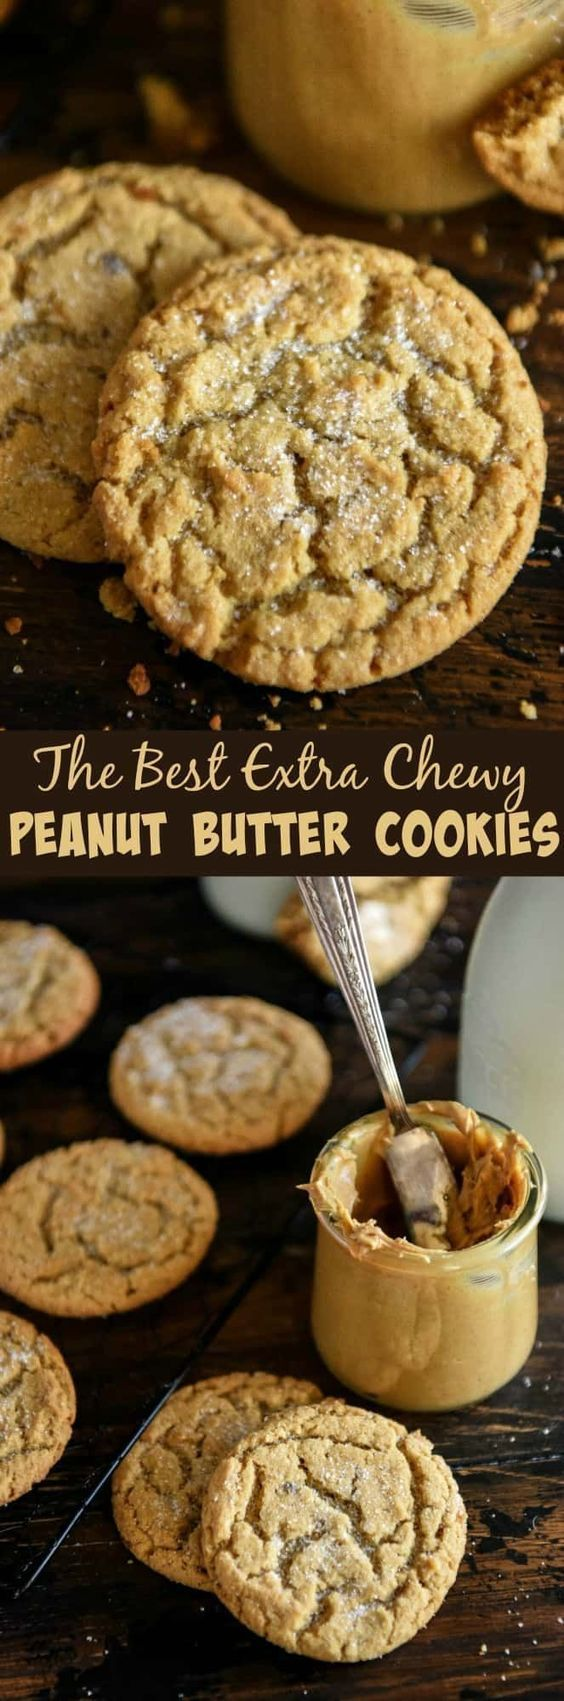 The Best Chewy Peanut Butter Cookies